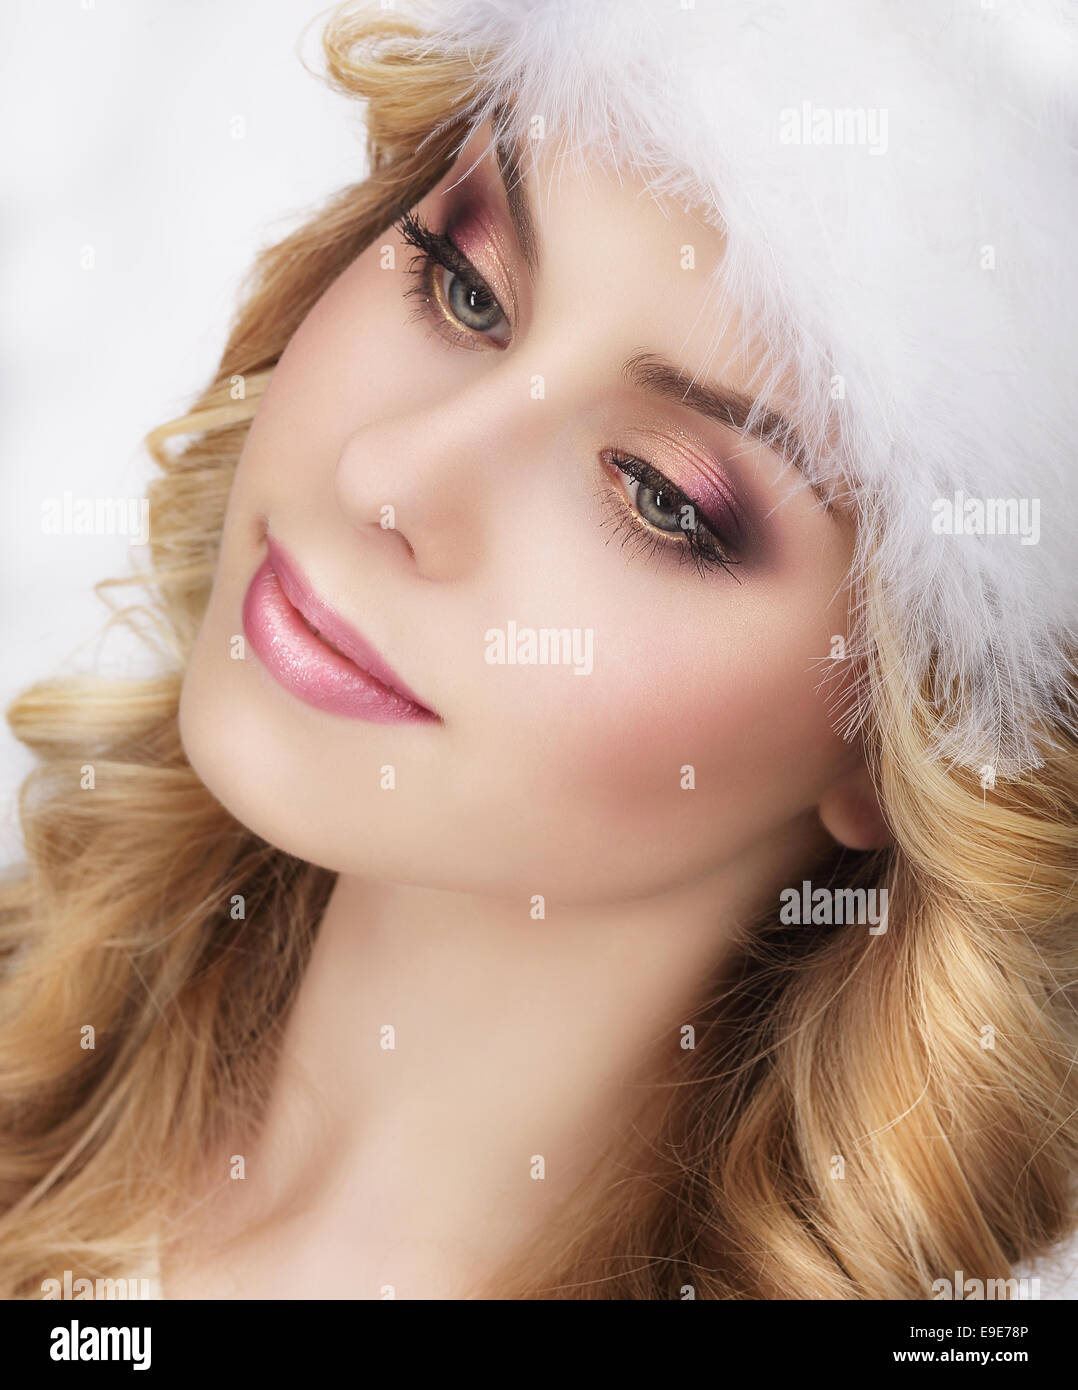 Pretty Dreamy Young Woman's Face - Stock Image